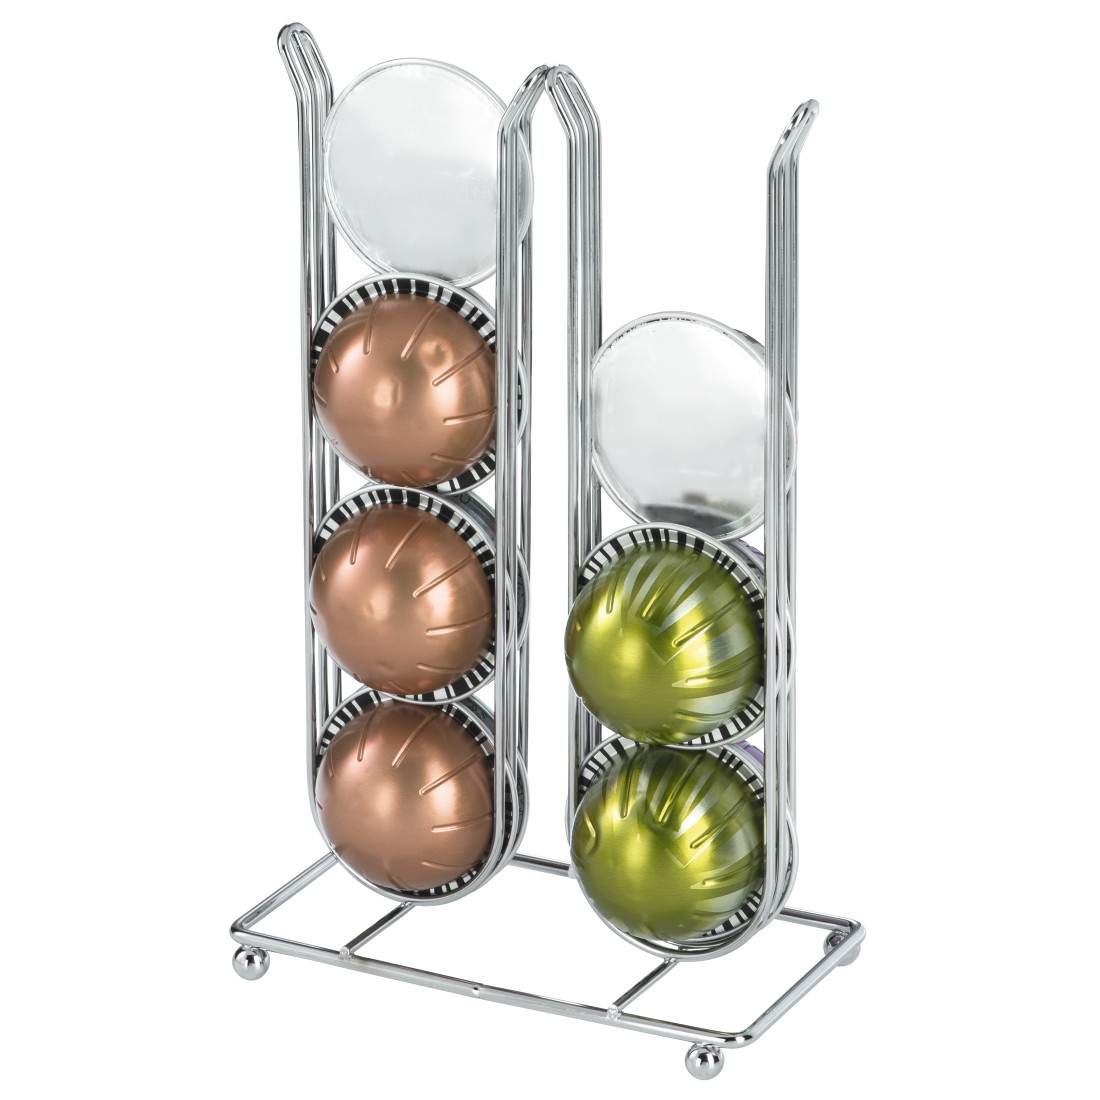 awx3 High-Res Appliance 3 - Xavax, Pilastro Coffee Capsule Stand for Dolce Gusto, 16 Capsules